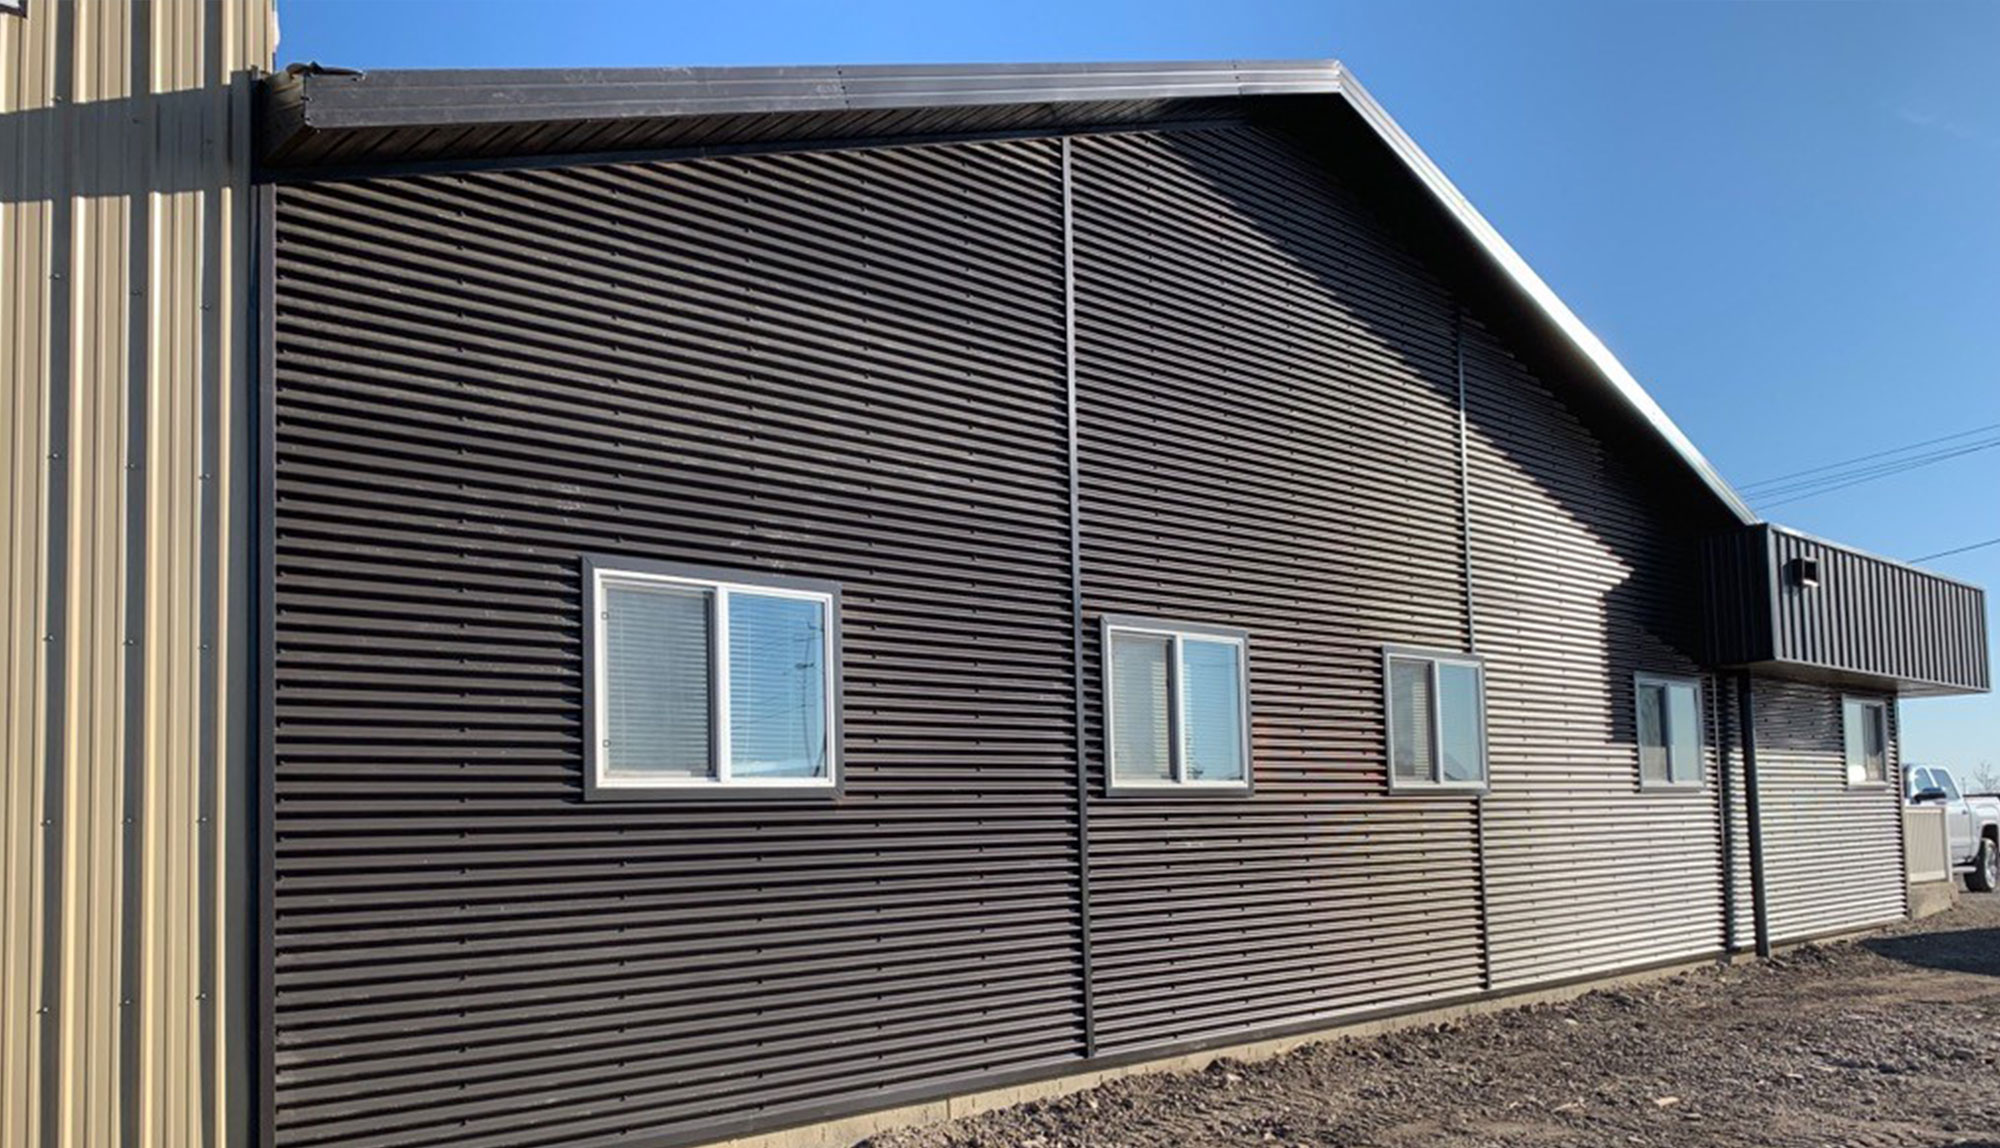 7 8 Corrugated Forma Steel Metal Siding And Roofing